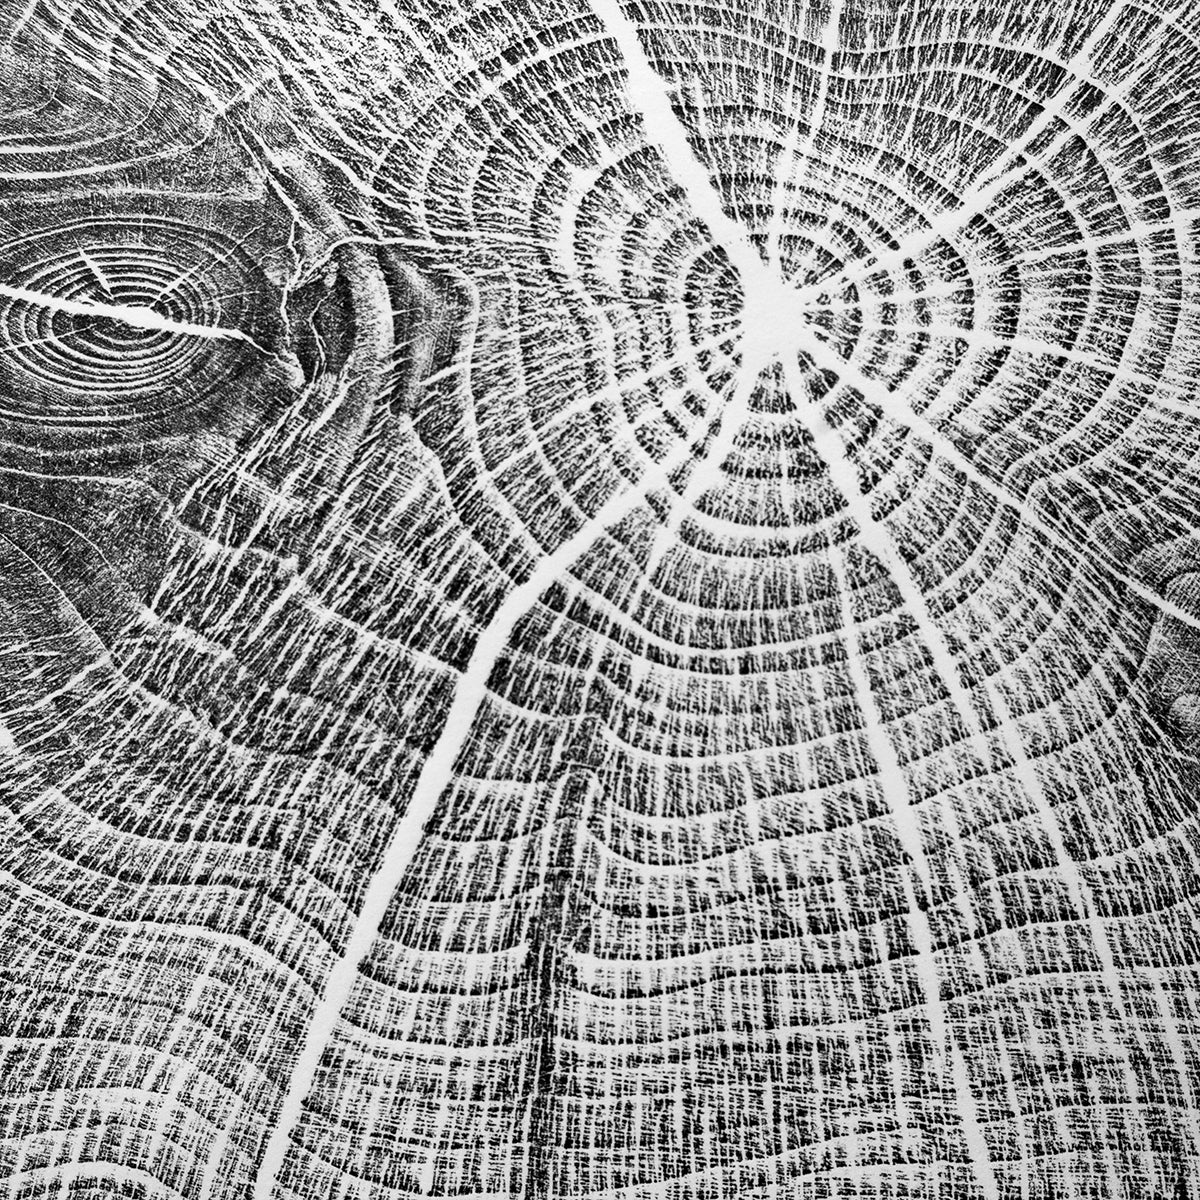 Original Print of Cumbrian Yew 1932-2018 Round 1 in Black Ink